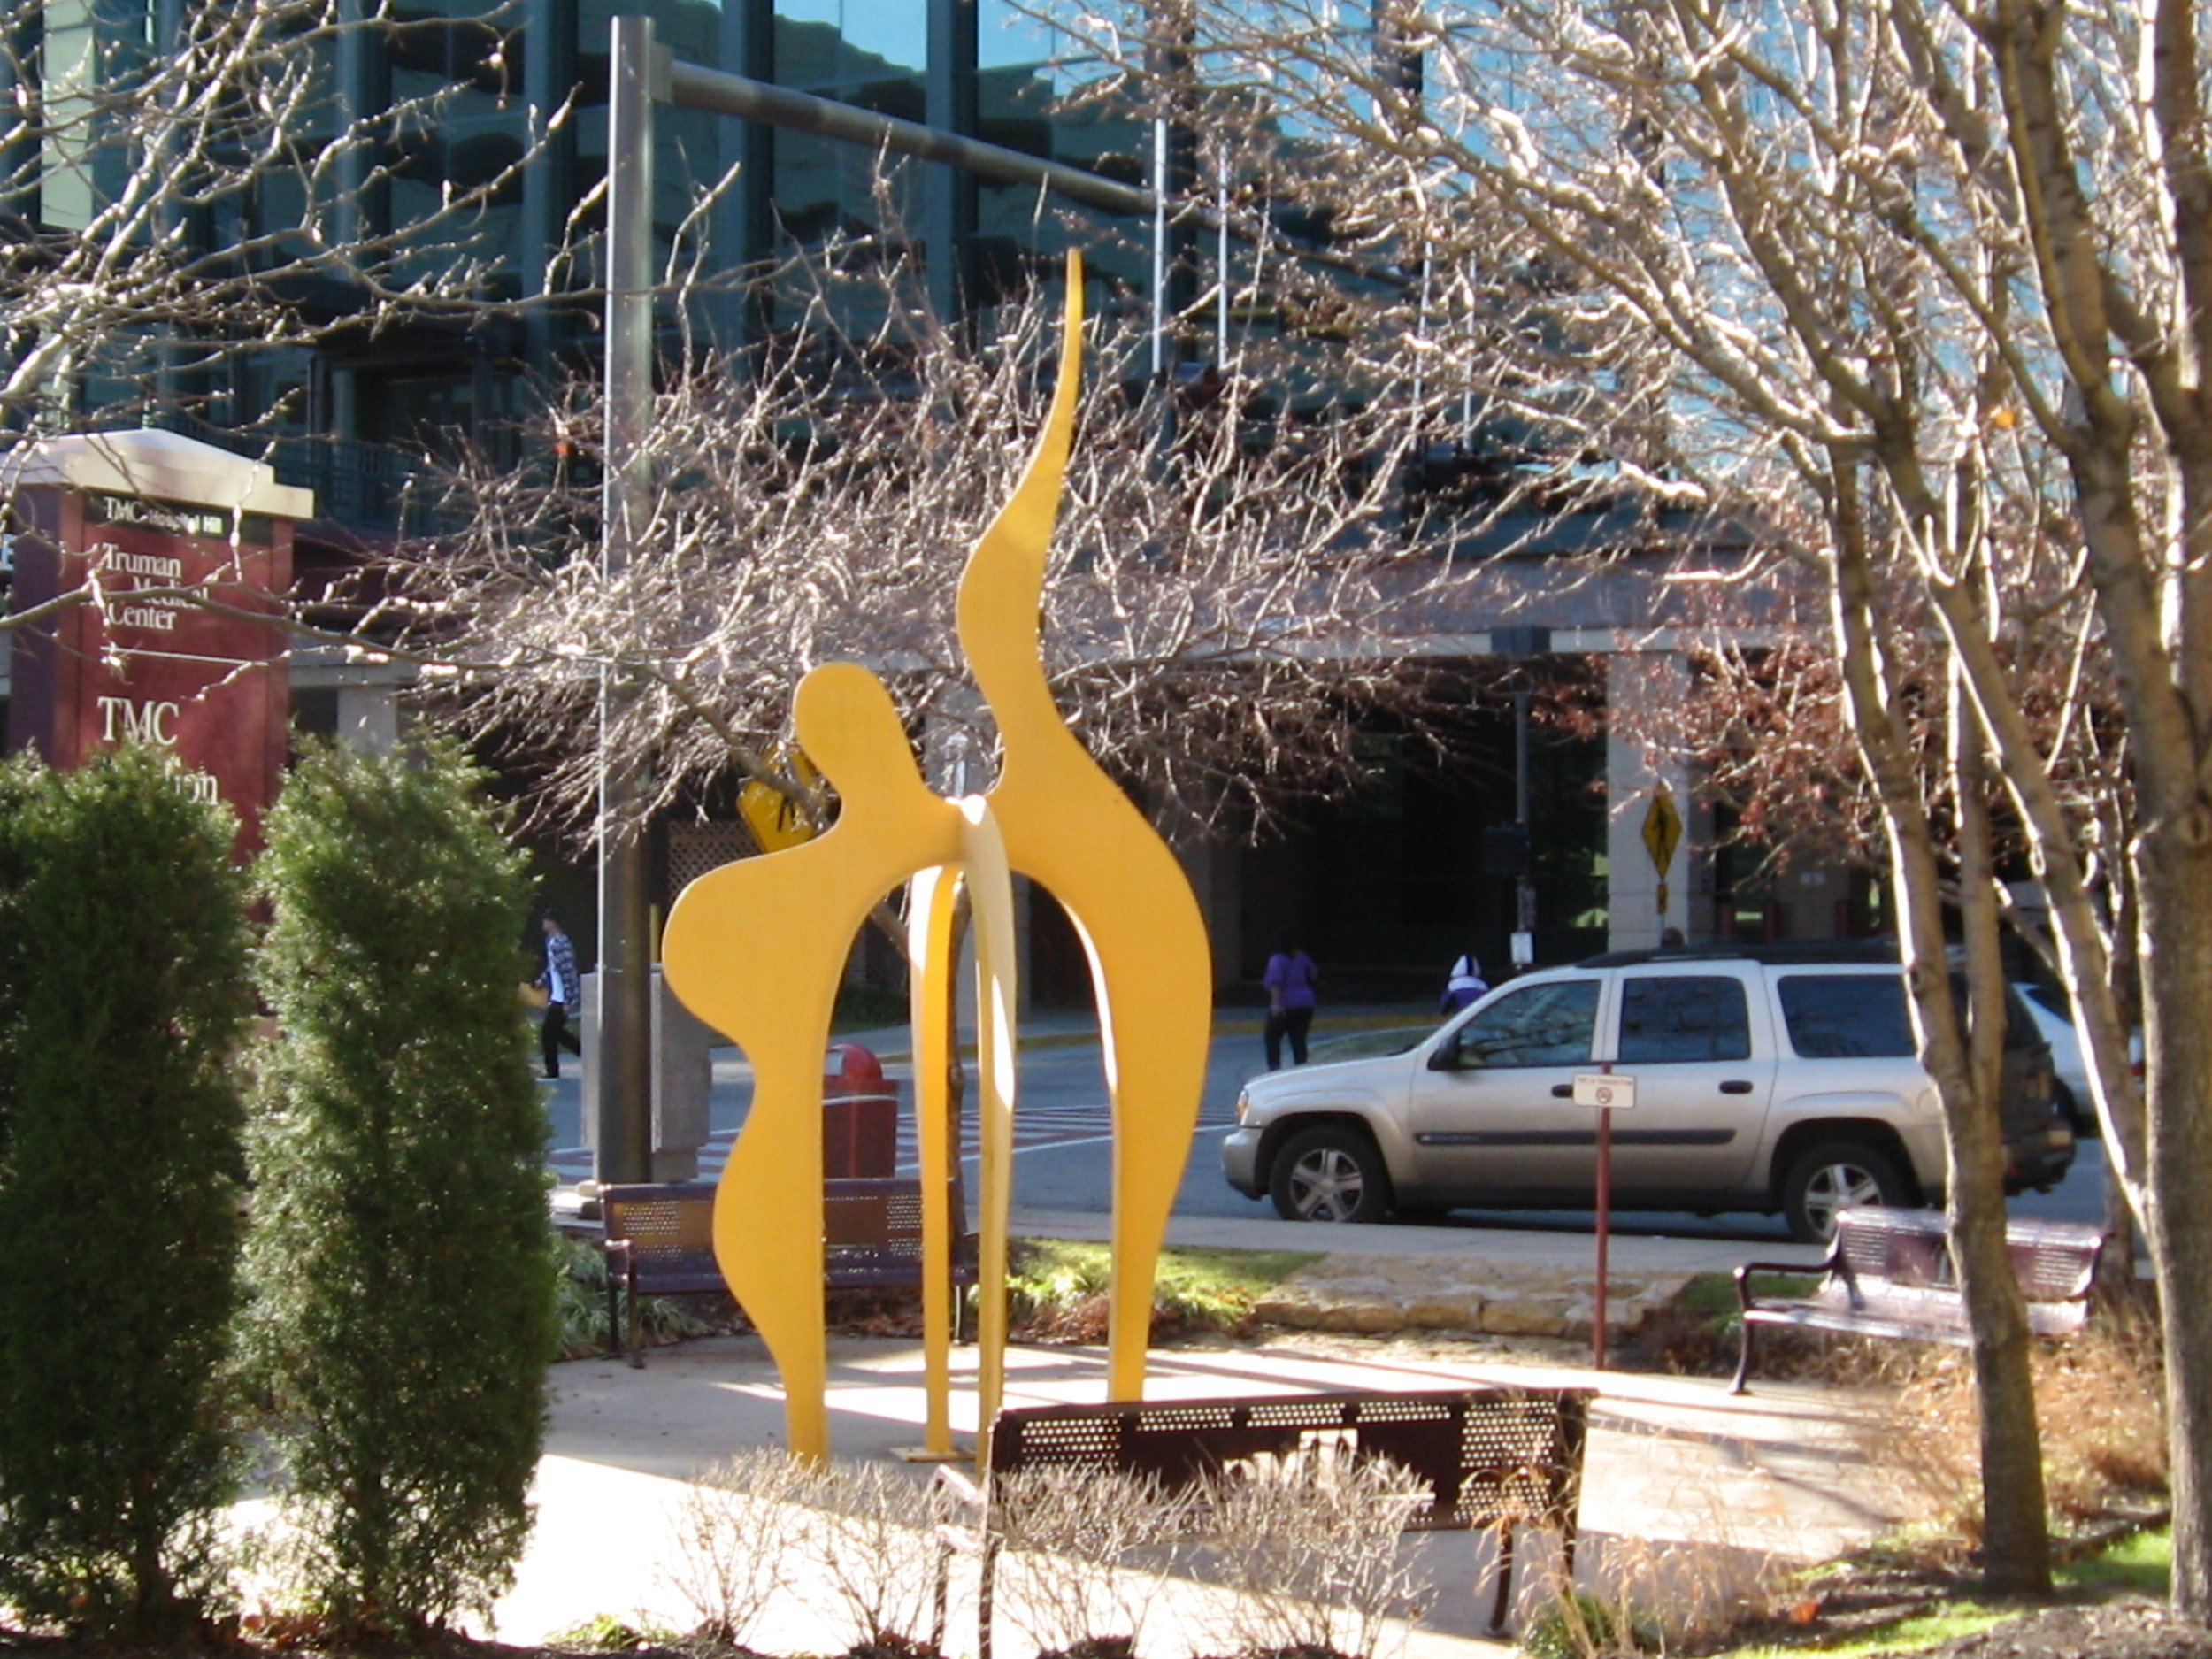 Nessie  2007, painted steel, 16x8x8 ft  Truman Medical Center 2301 Holmes St Kansas City, MO